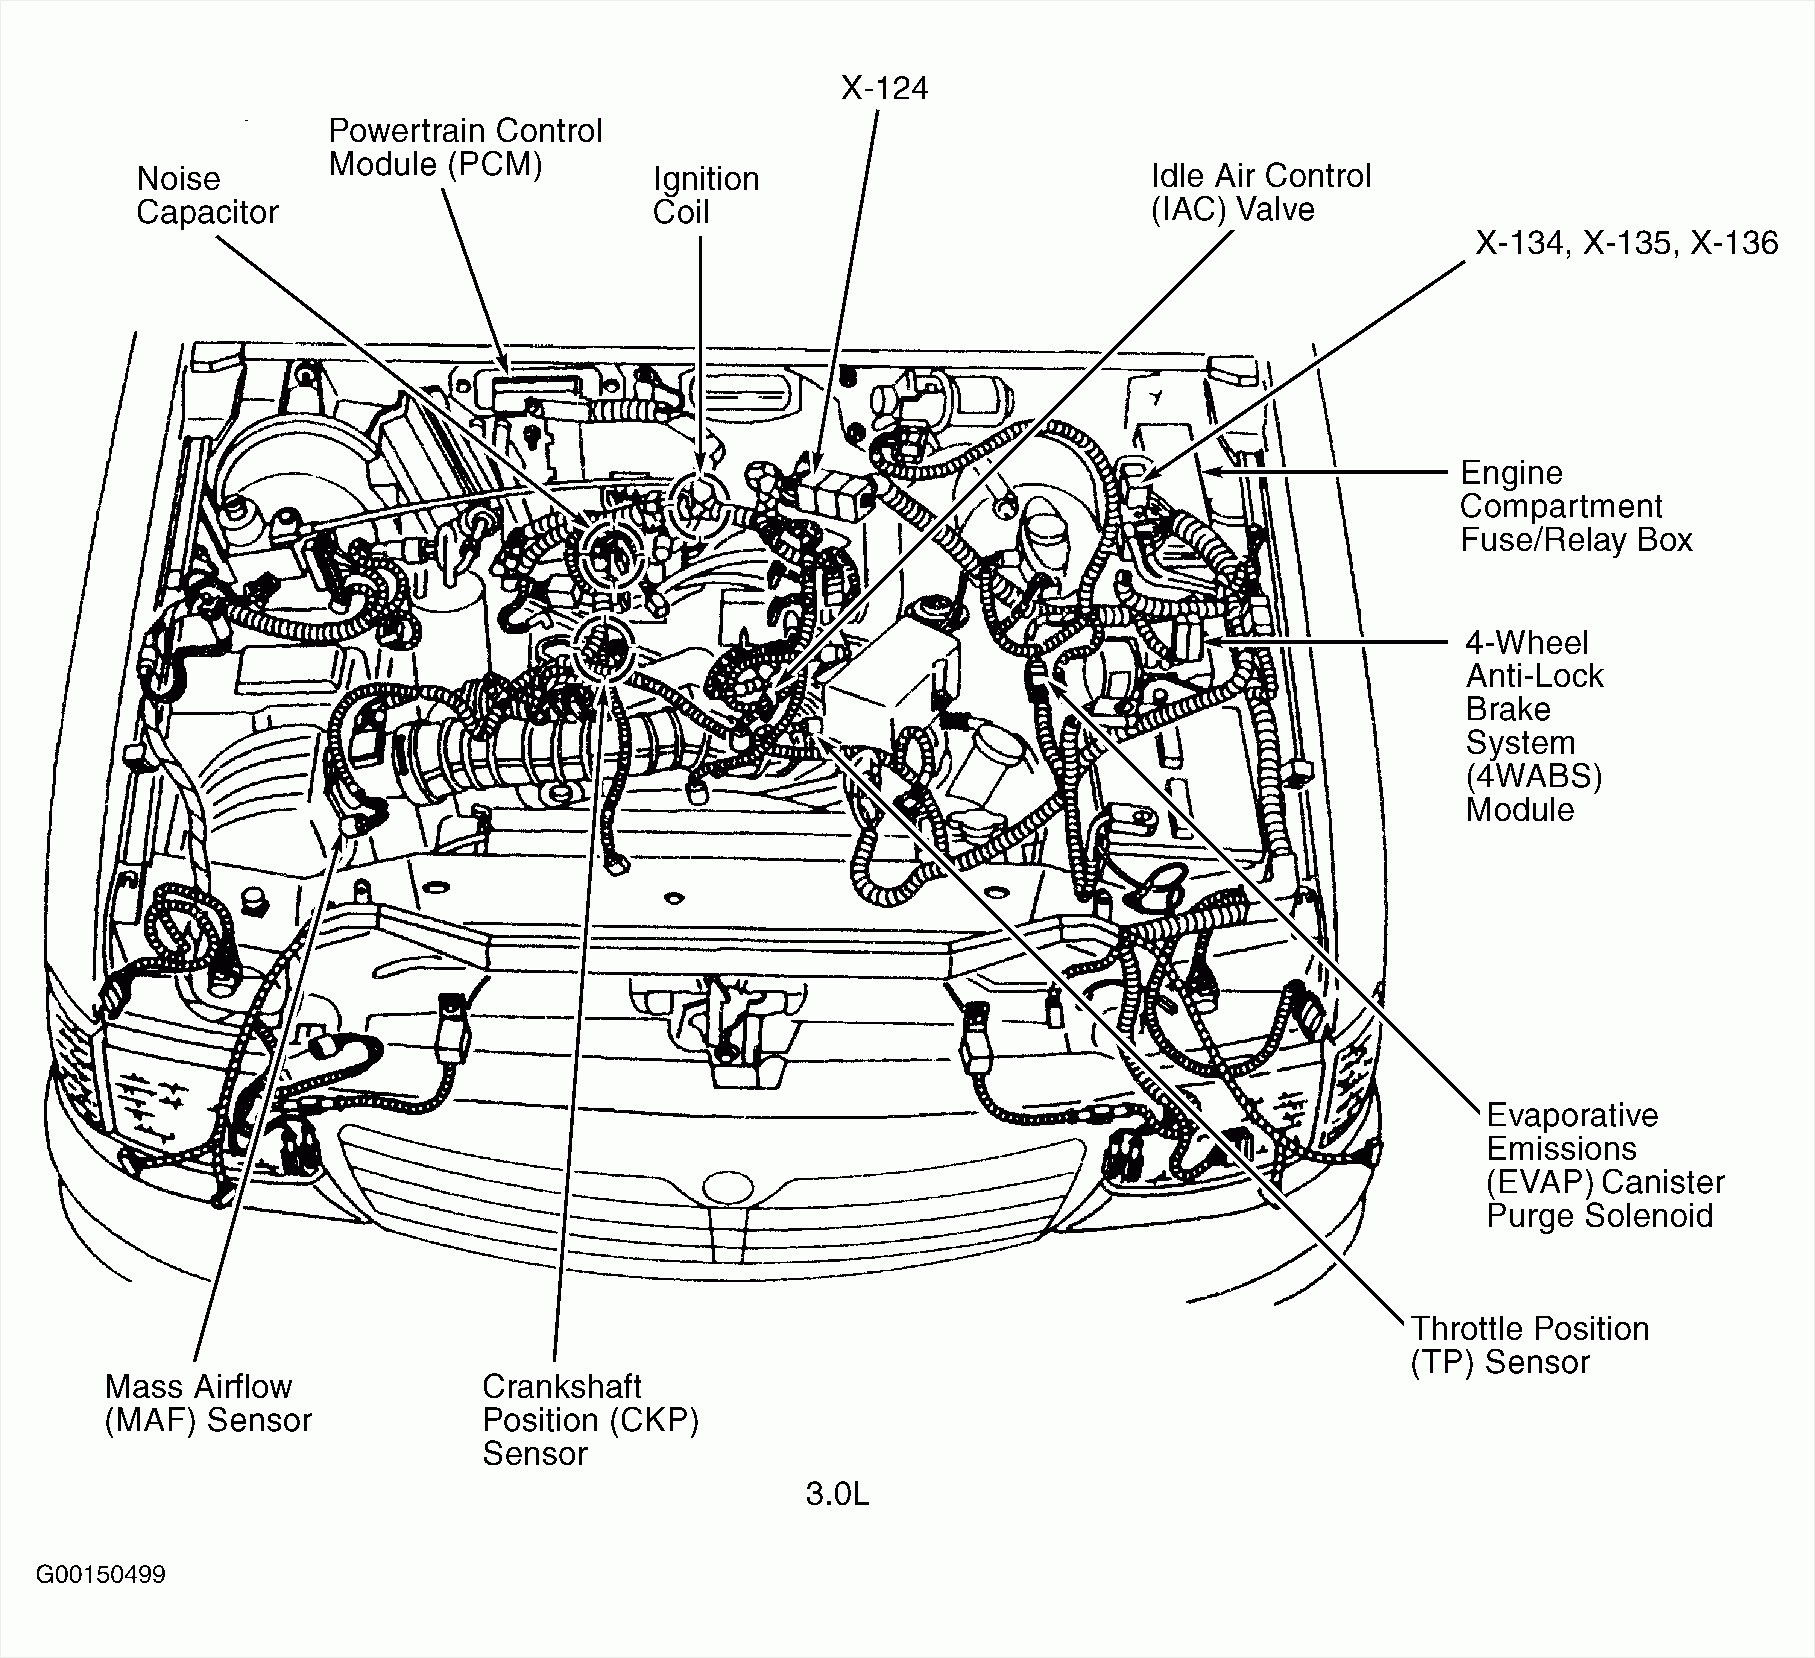 2002 Ford Escape Engine Diagram Wiring Diagram Details